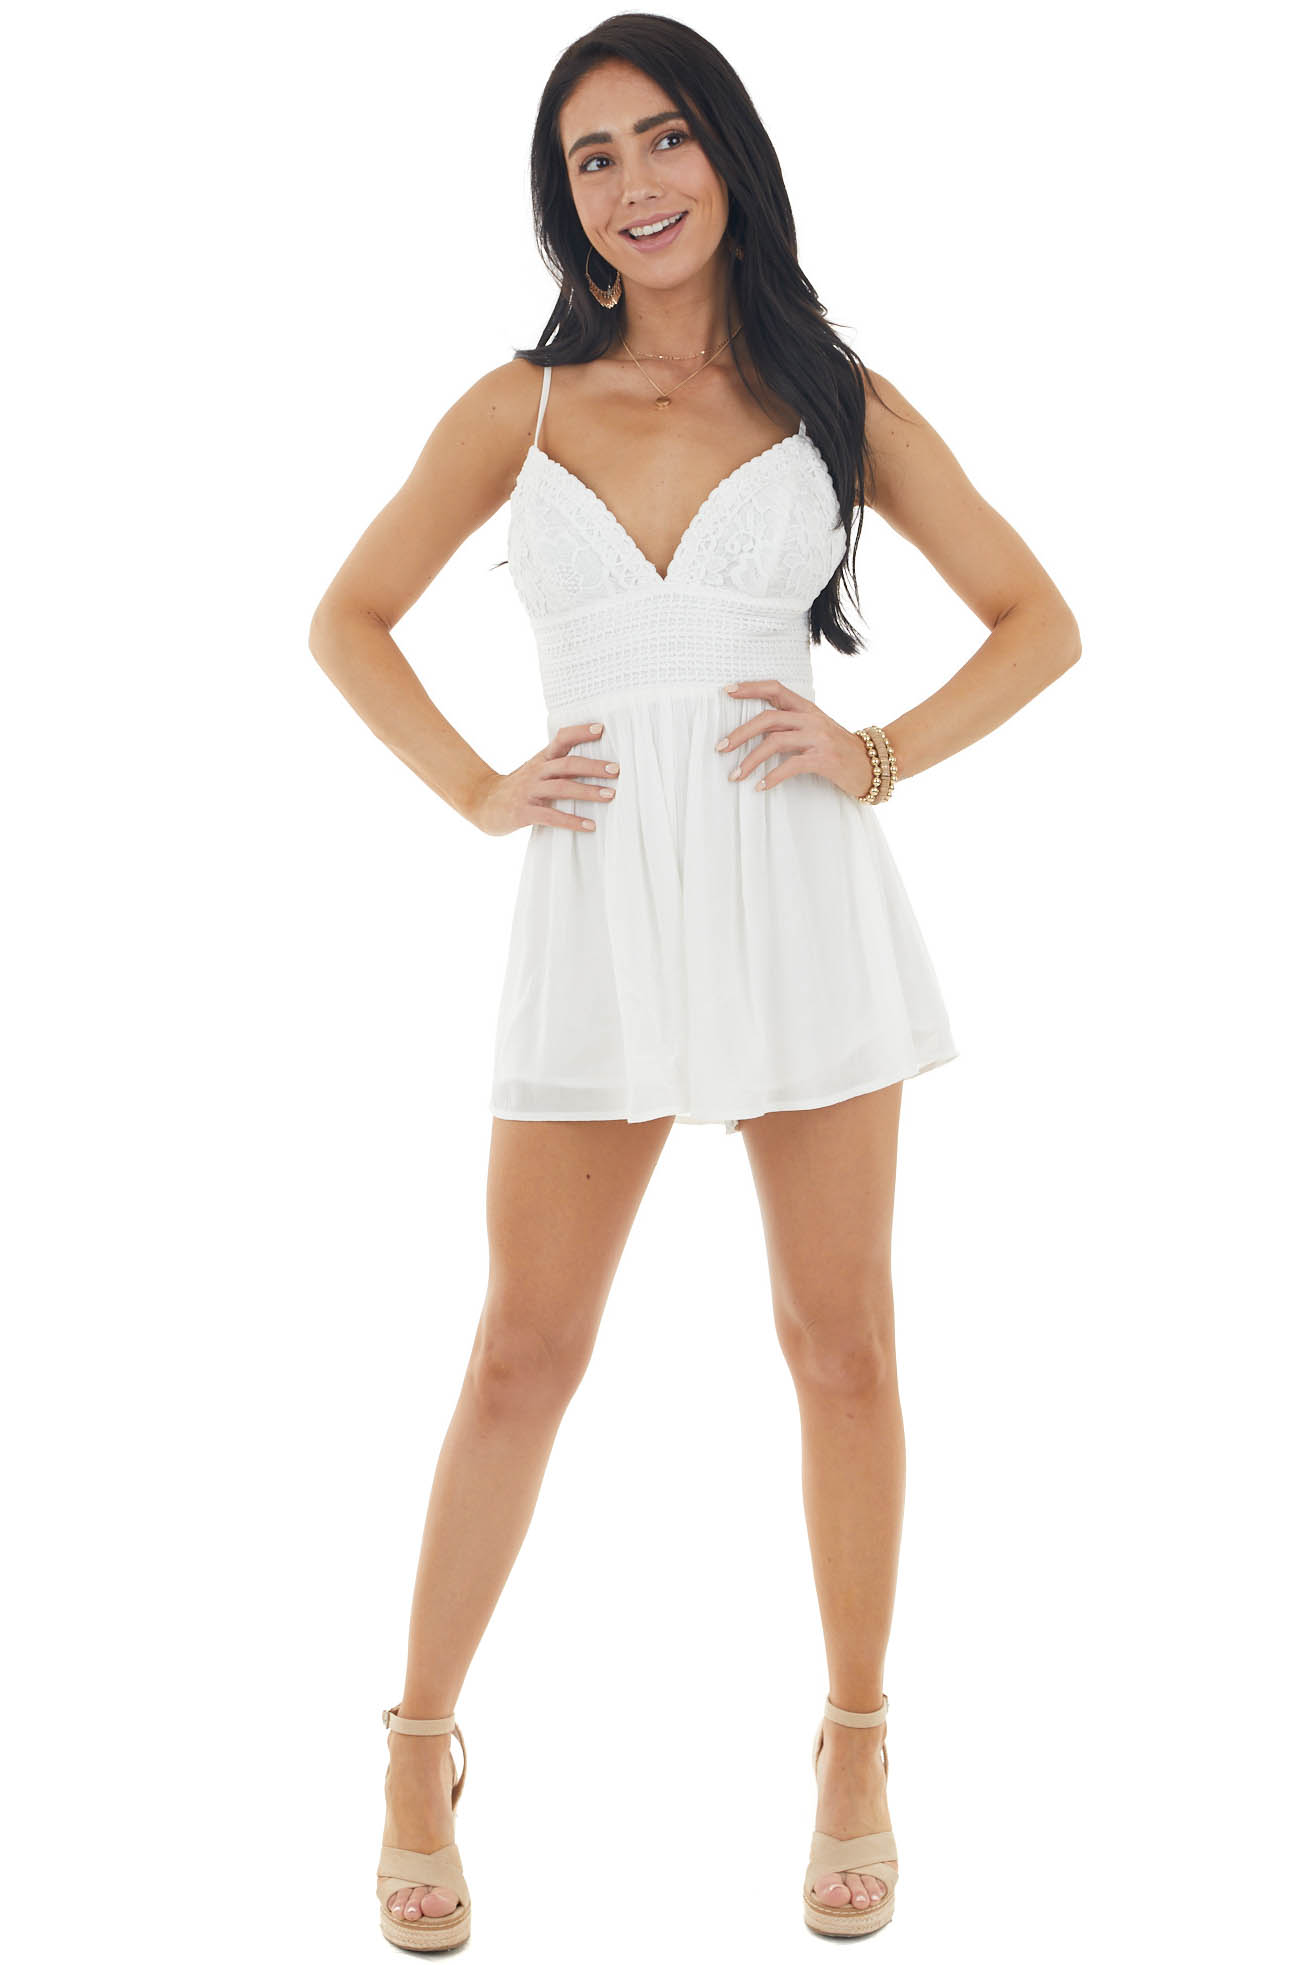 Pearl White Sleeveless Romper with Crochet Lace Details